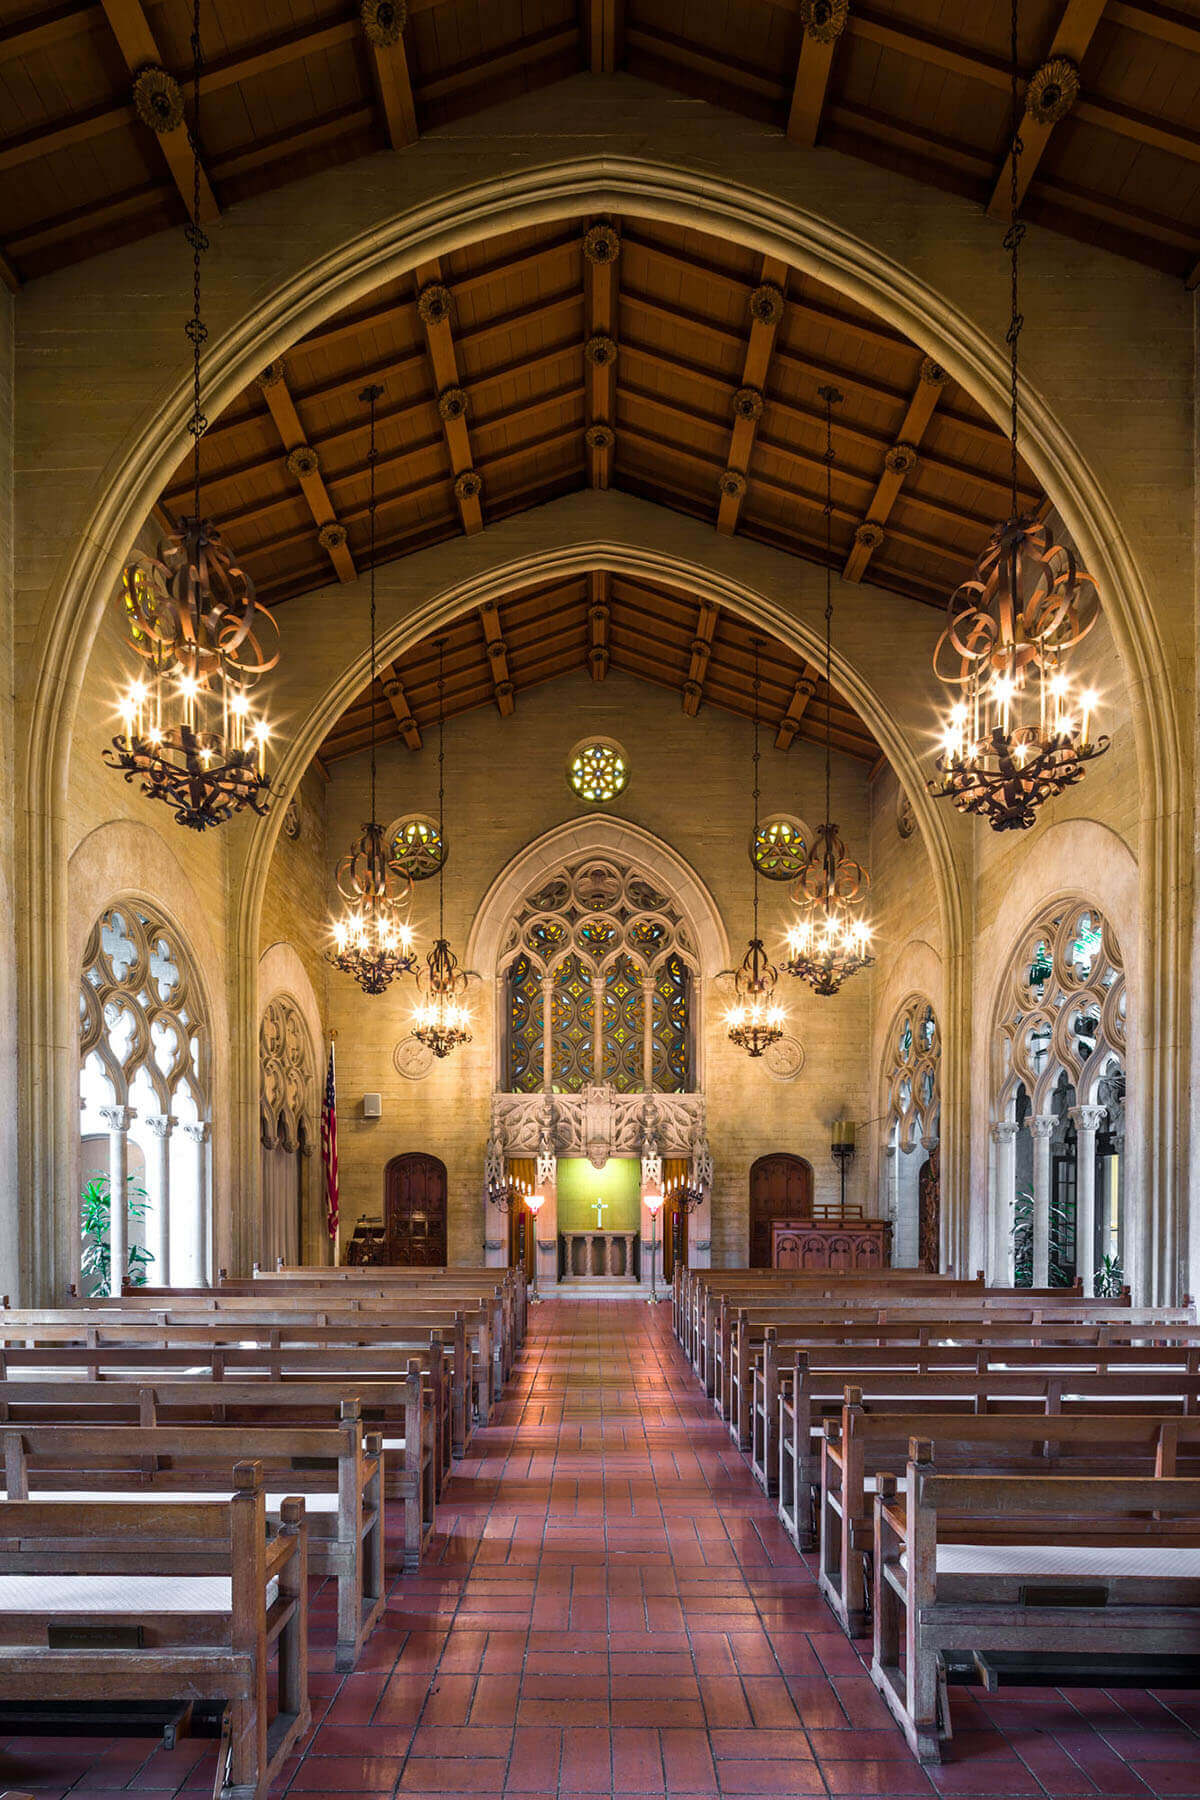 A glimpse down the aisle into a beautiful chapel adorned with chandeliers and stained glass windows.